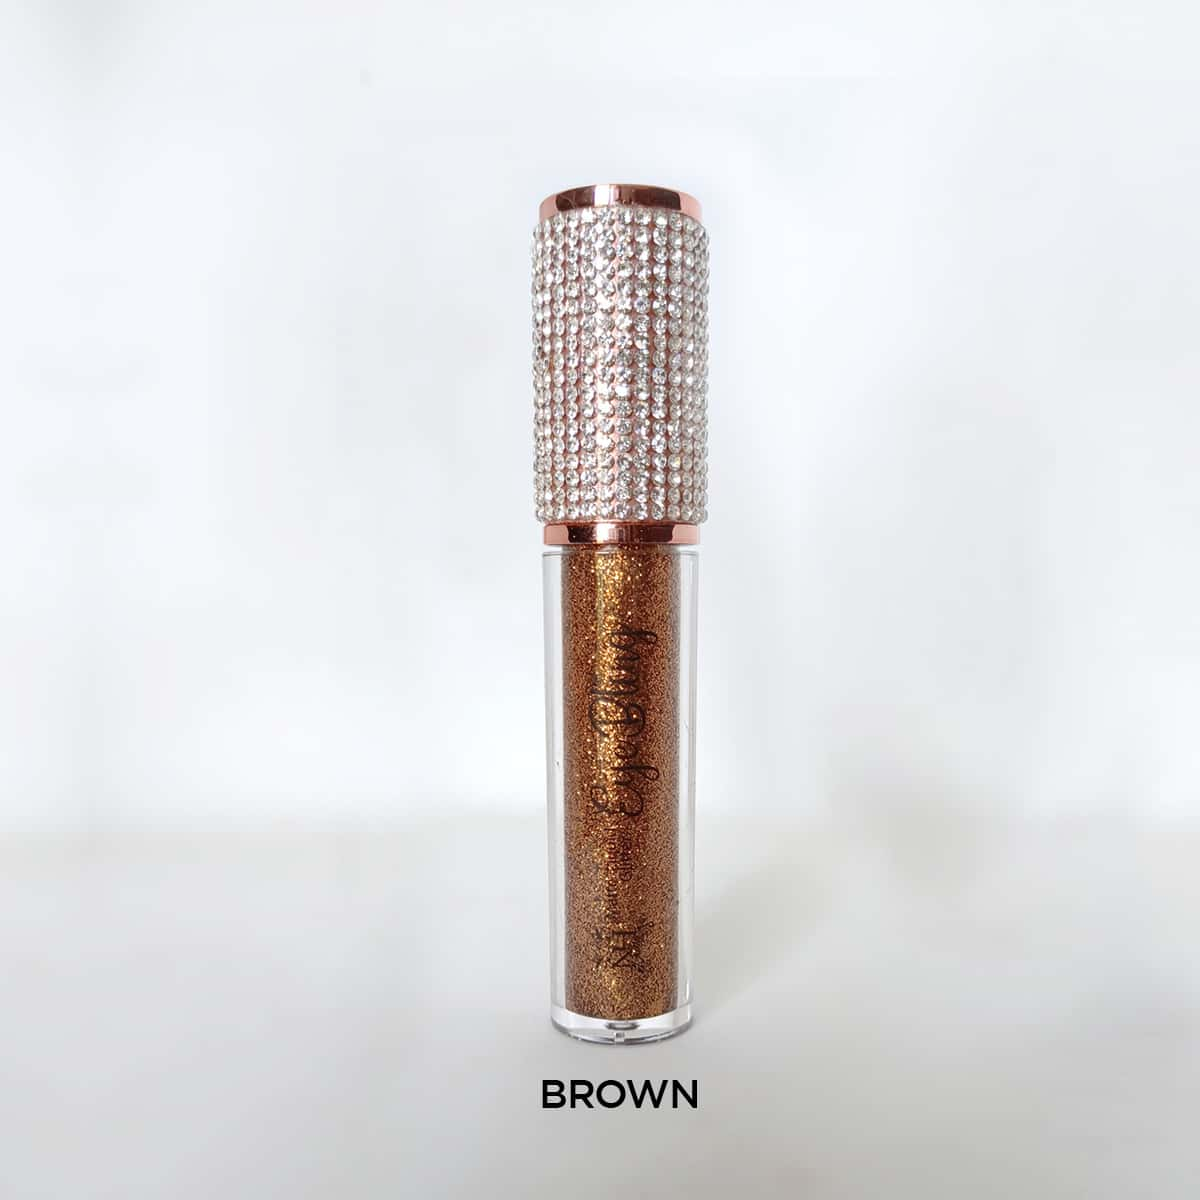 brown-HZv6cAgs